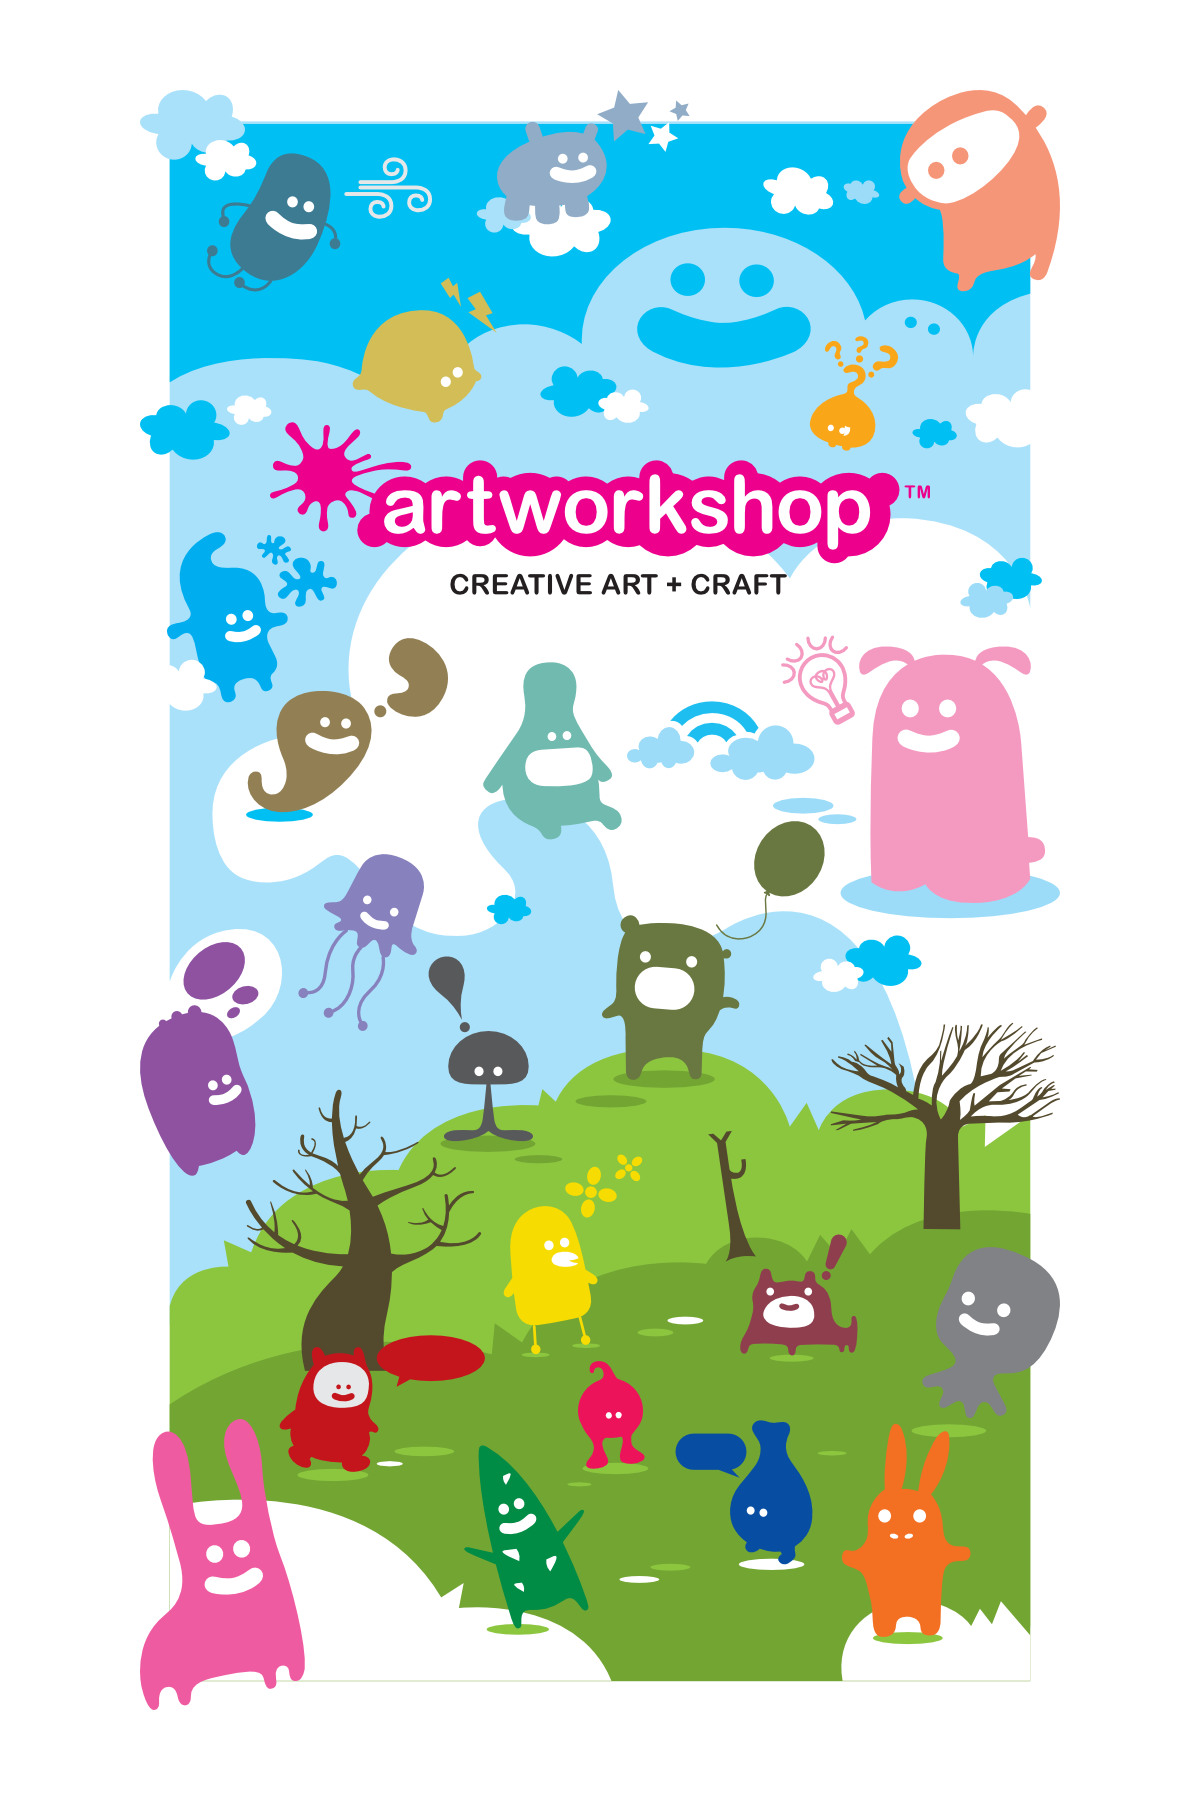 Artworkshop